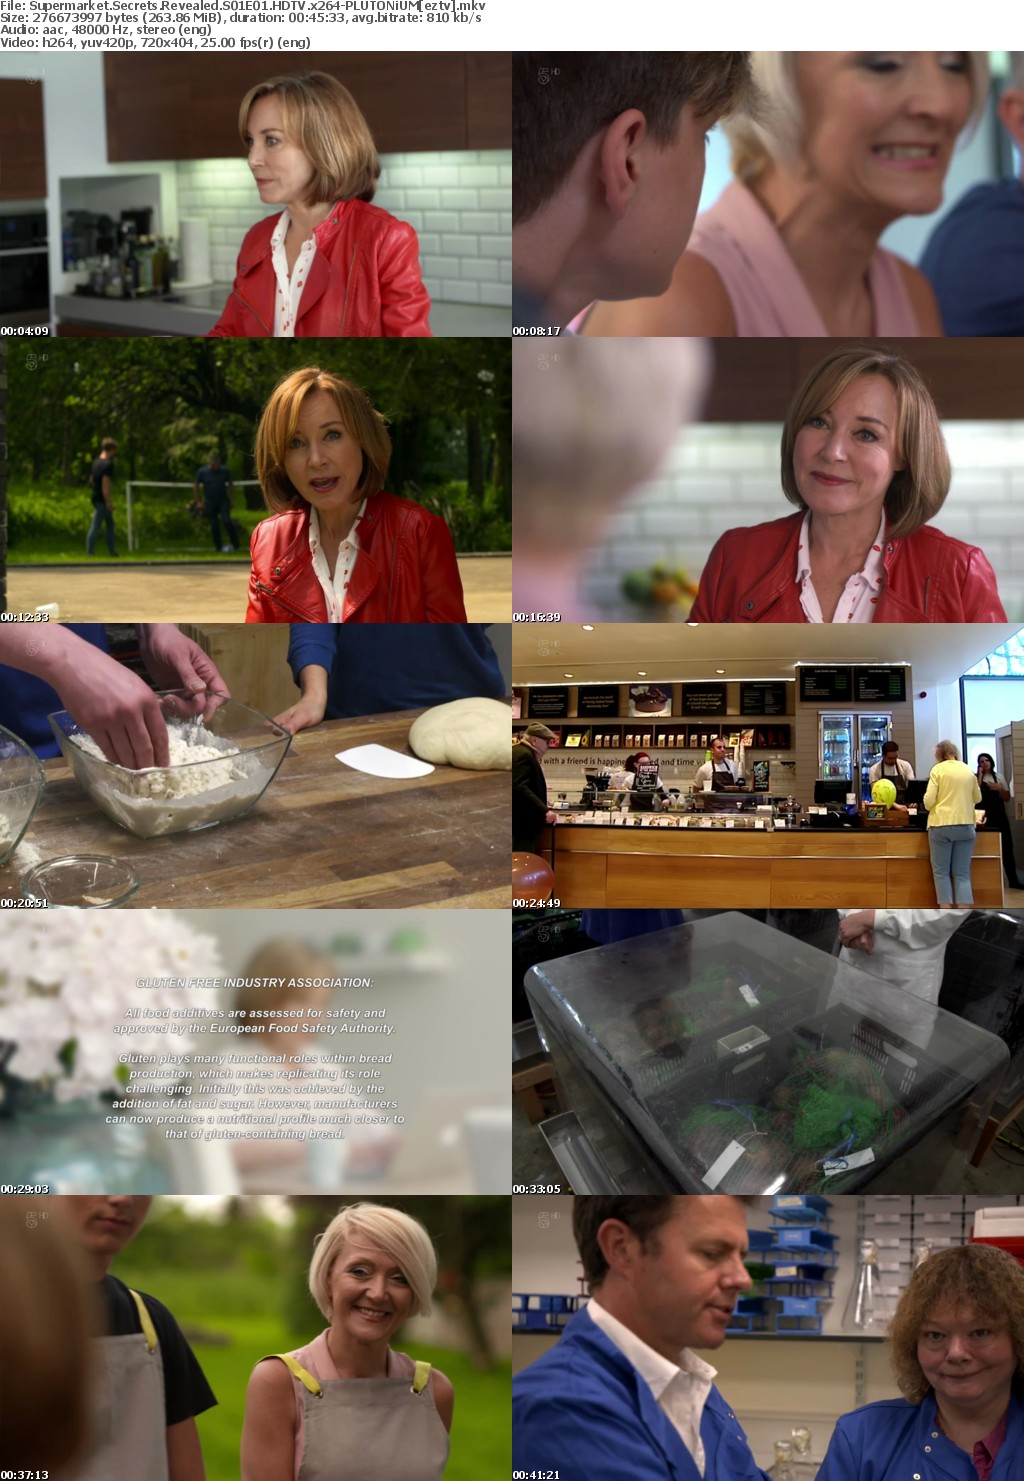 Supermarket Secrets Revealed S01E01 HDTV x264-PLUTONiUM